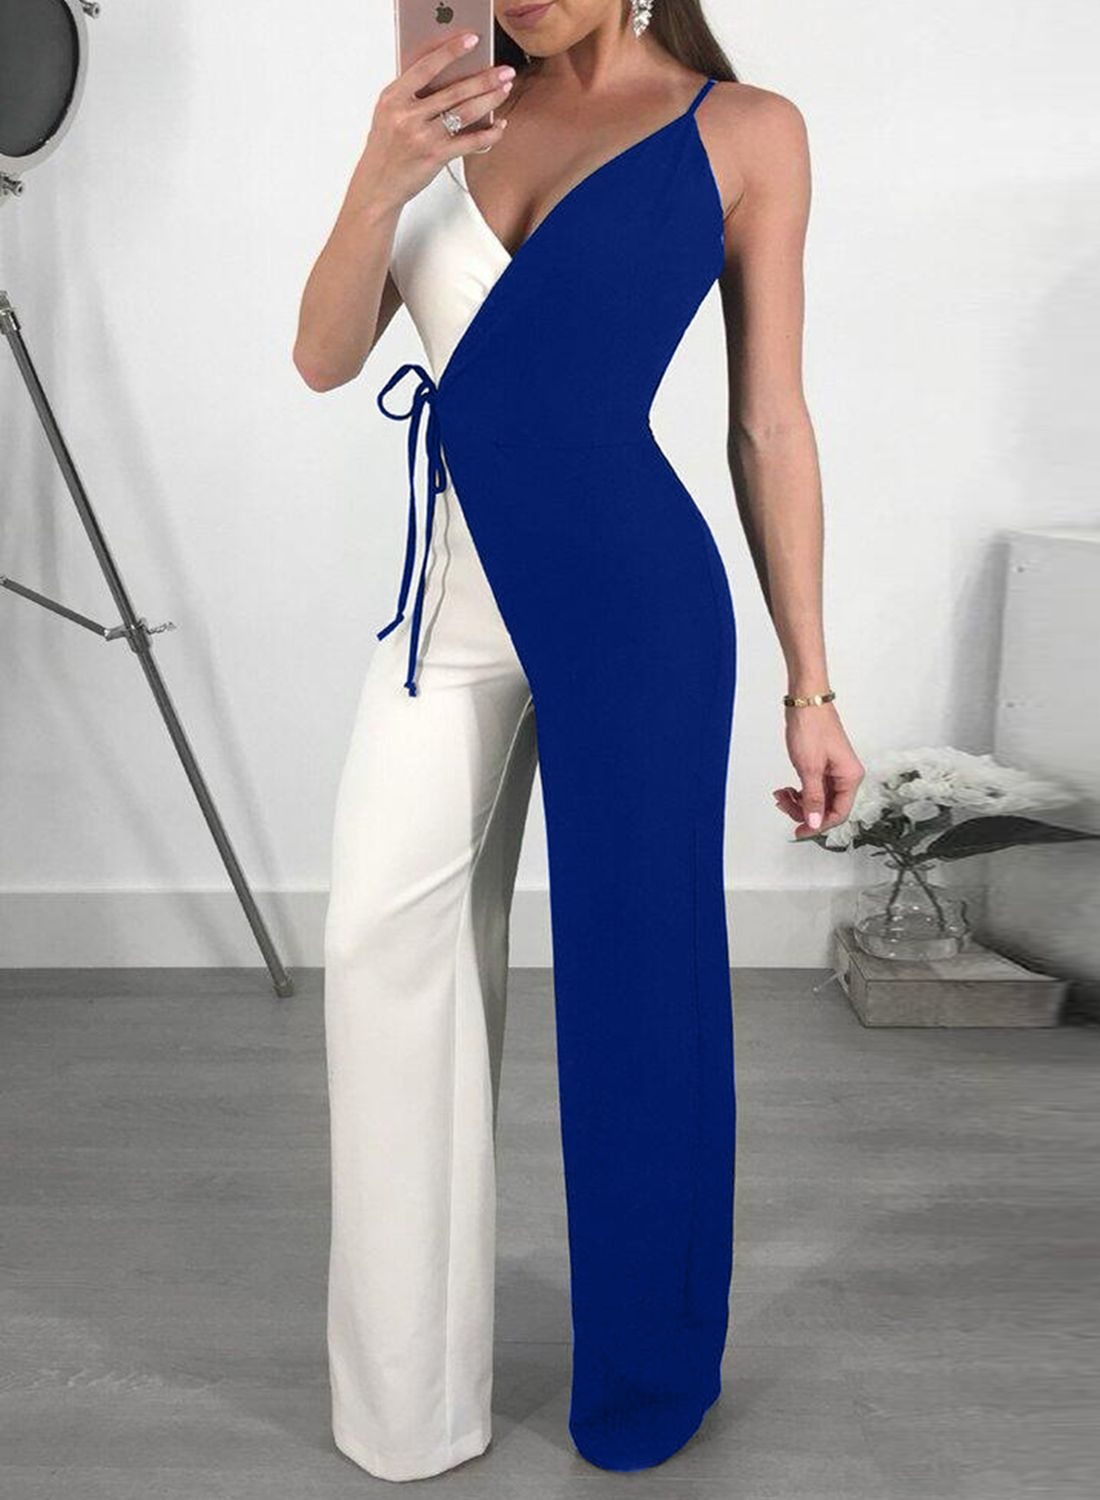 96c82df55c6 V Neck Sleeveless Contrast Color Wide Leg Jumpsuits in 2019 ...